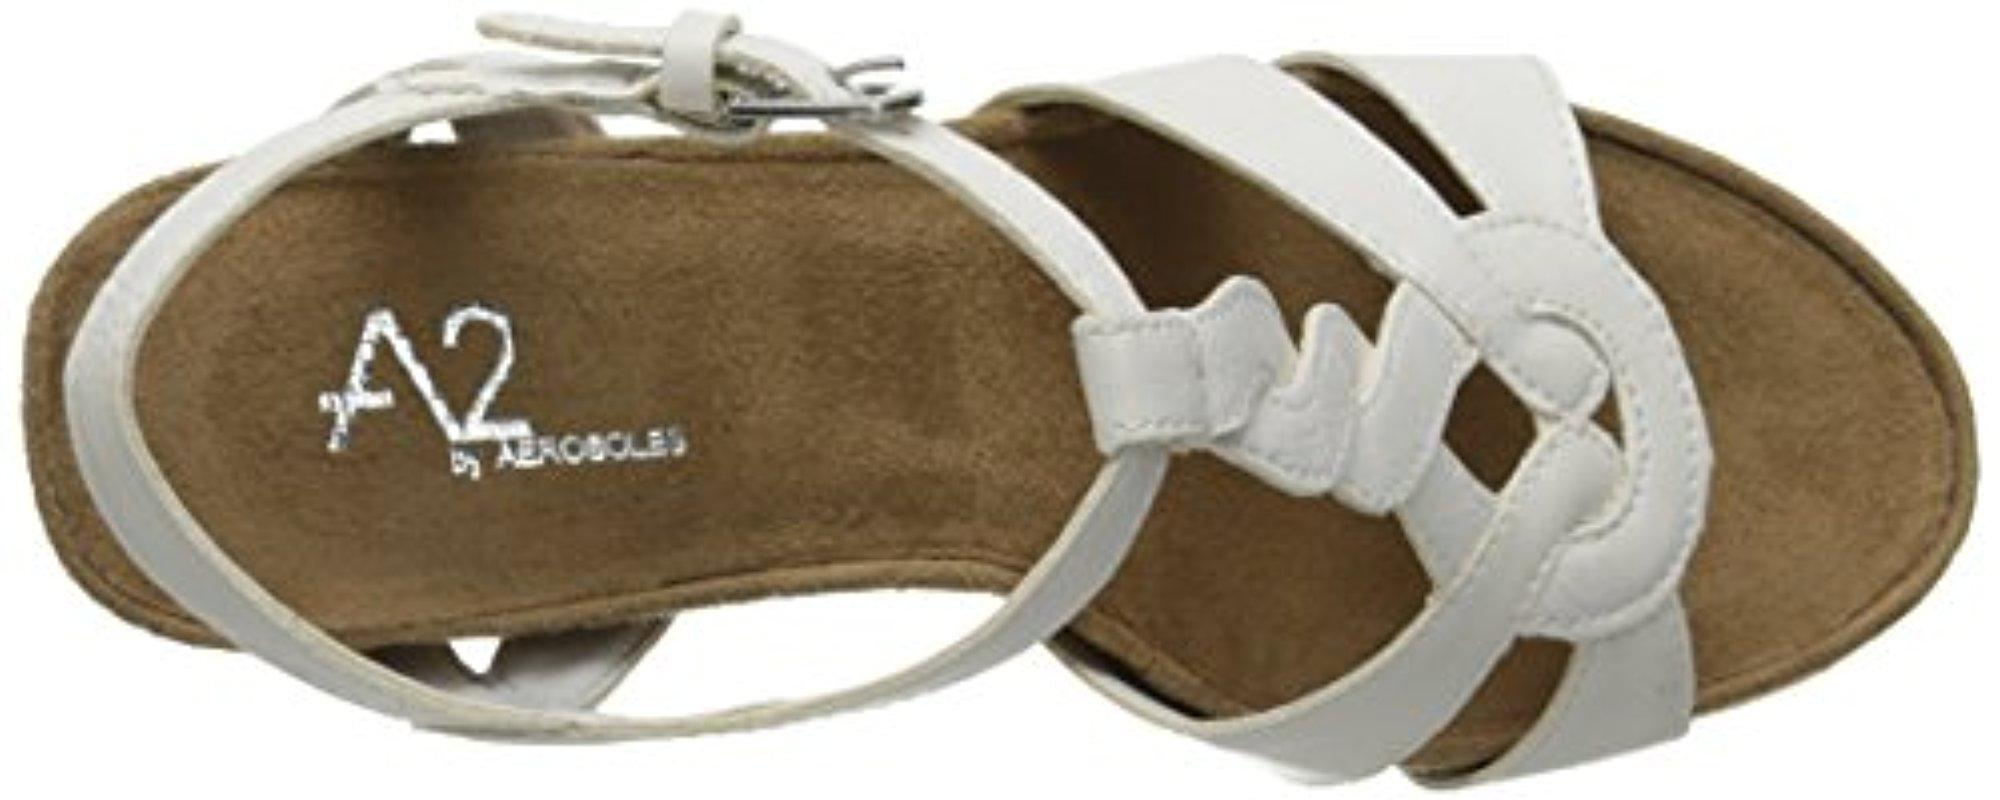 407259da1fd0 Lyst - Aerosoles A2 By Stone Plush Wedge Sandal in White